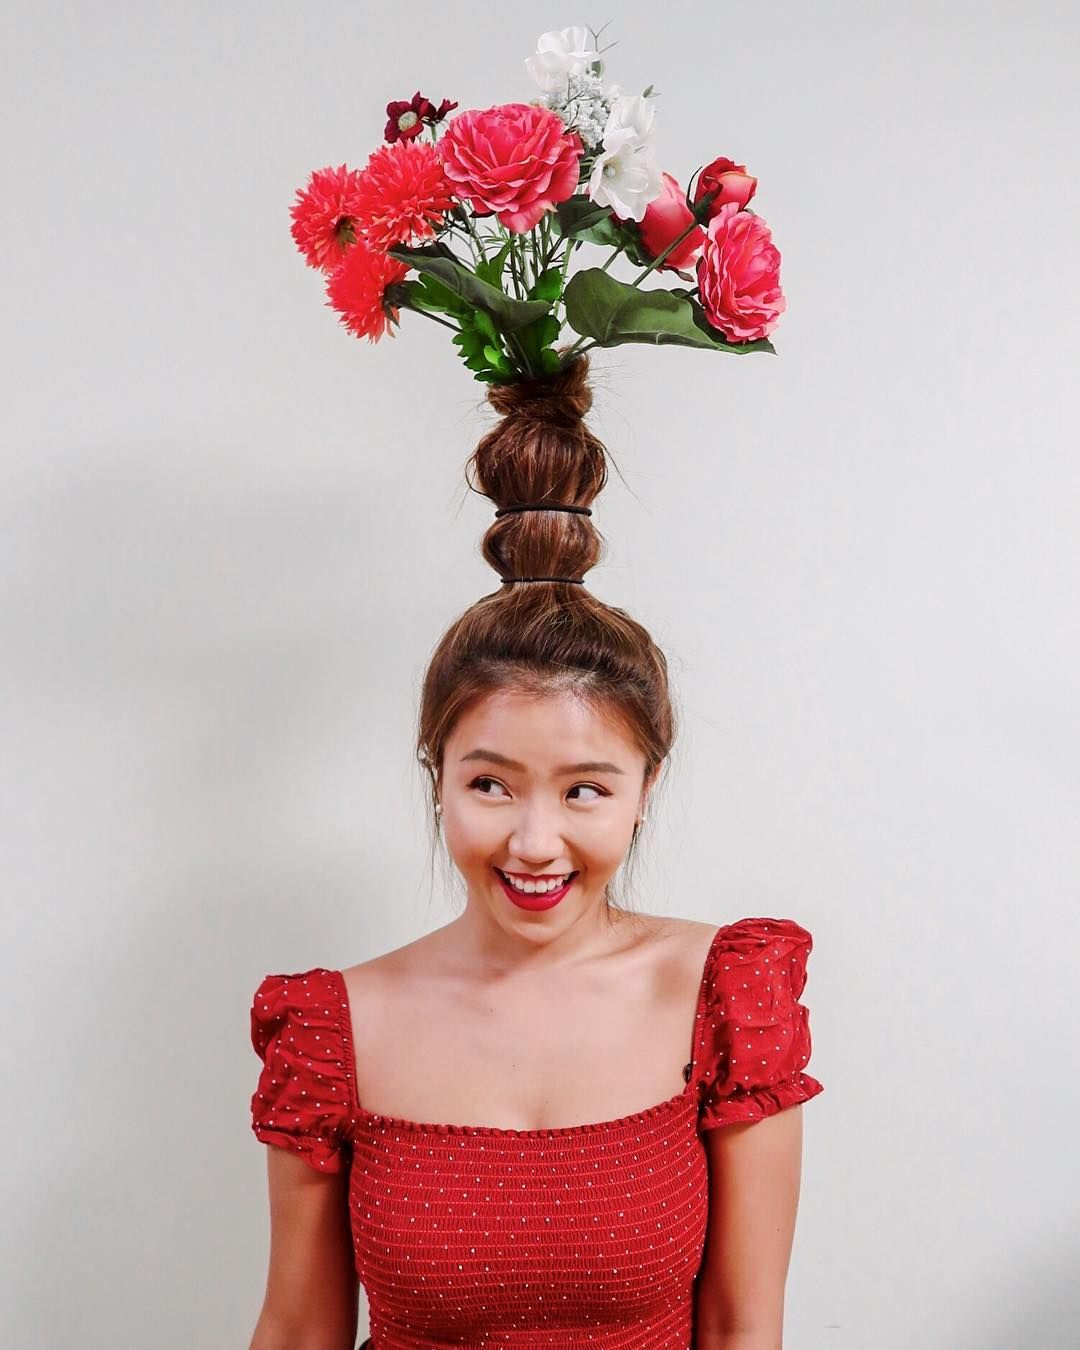 """Flower Vase Hair"" Has People Turning Their Locks Into Real Vases Atop Their Heads"